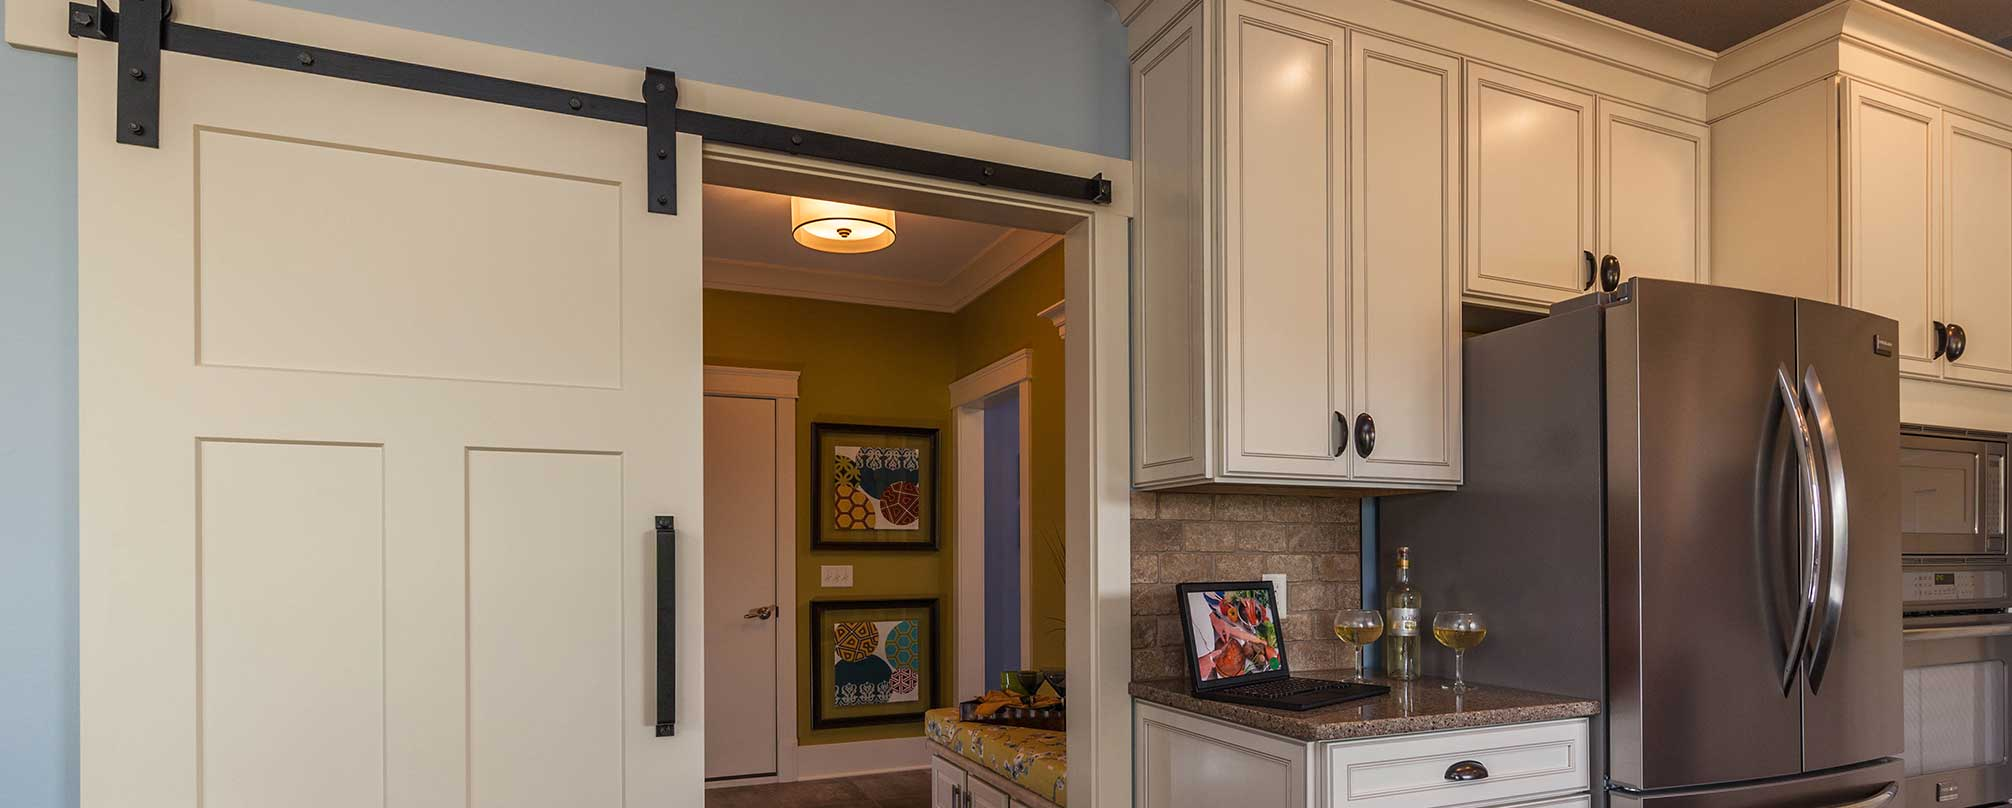 Kitchen Open Door Design These Doors Are Always Open Door Trends For Your Home Wayne Homes